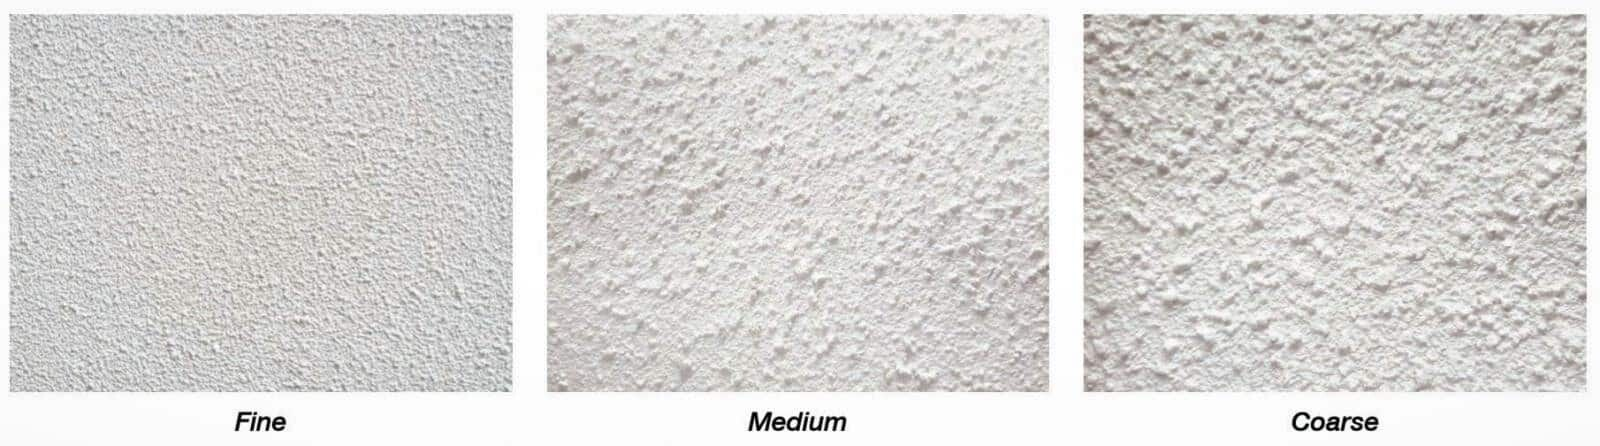 Wethertex wall coatings are available in various grades of texture from fine through to coarse